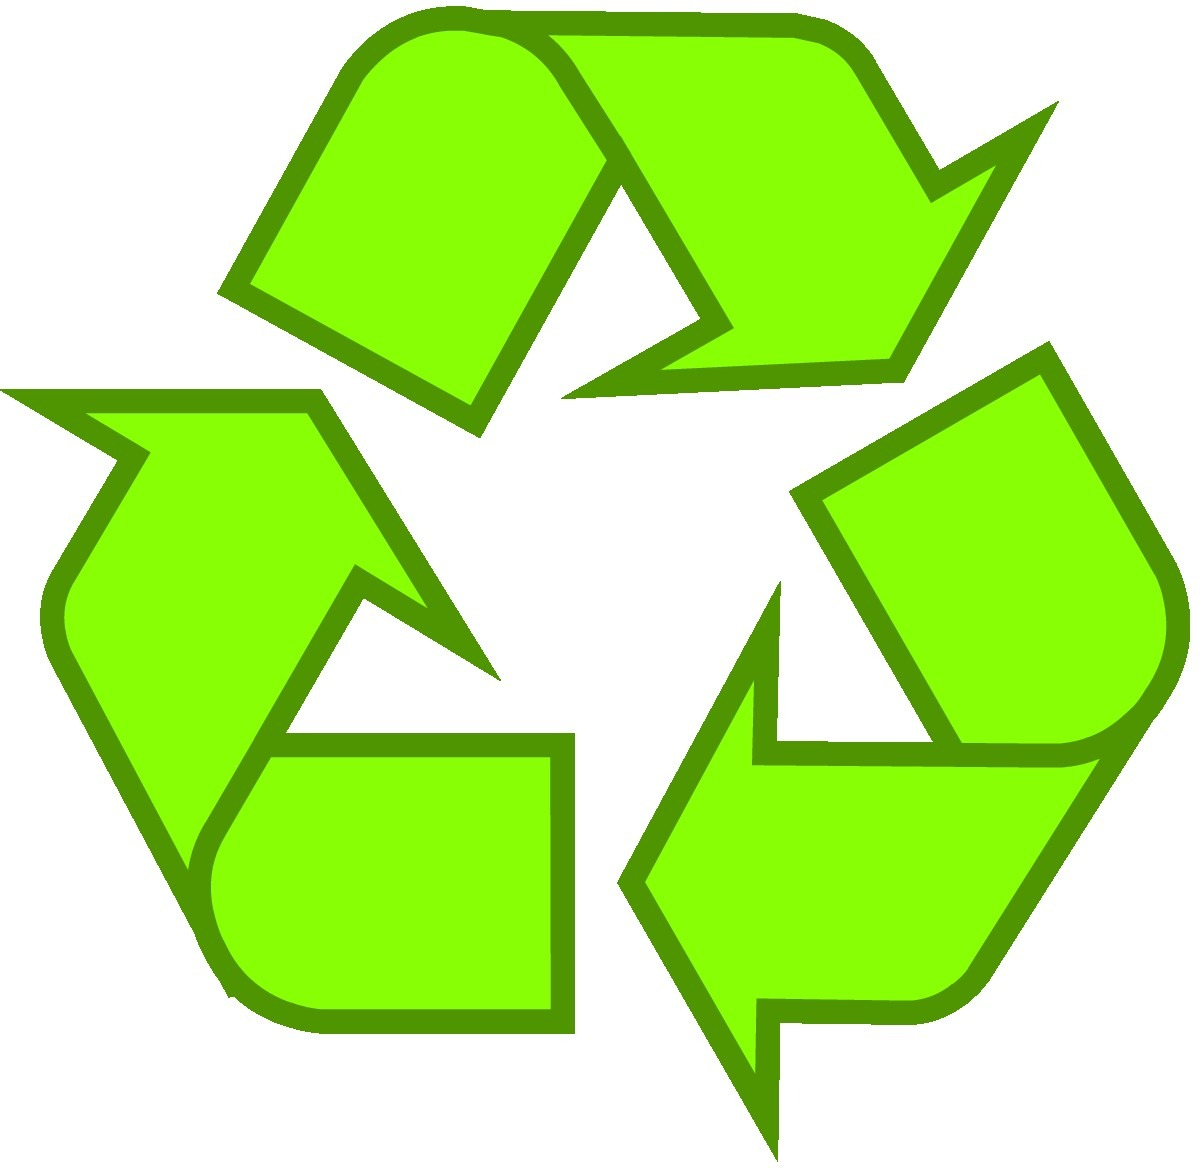 Recycling Symbol Icon Outline Solid Light Green For Printable